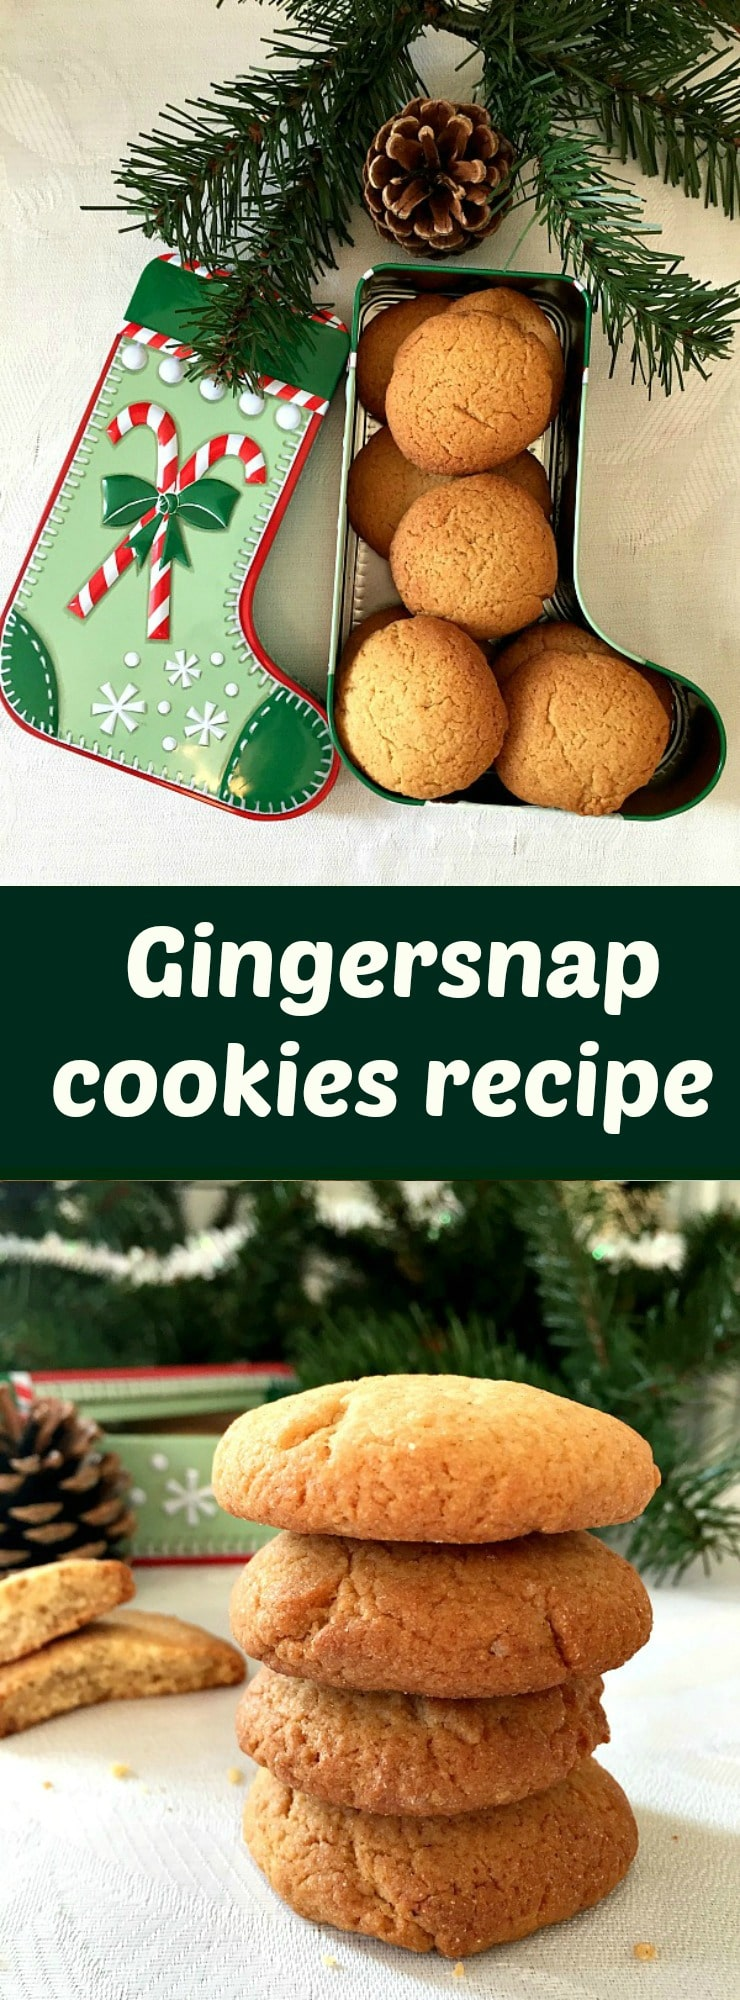 Gingersnap cookies recipe, deliciously crunchy and so flavourful. The best Christmas cookies.